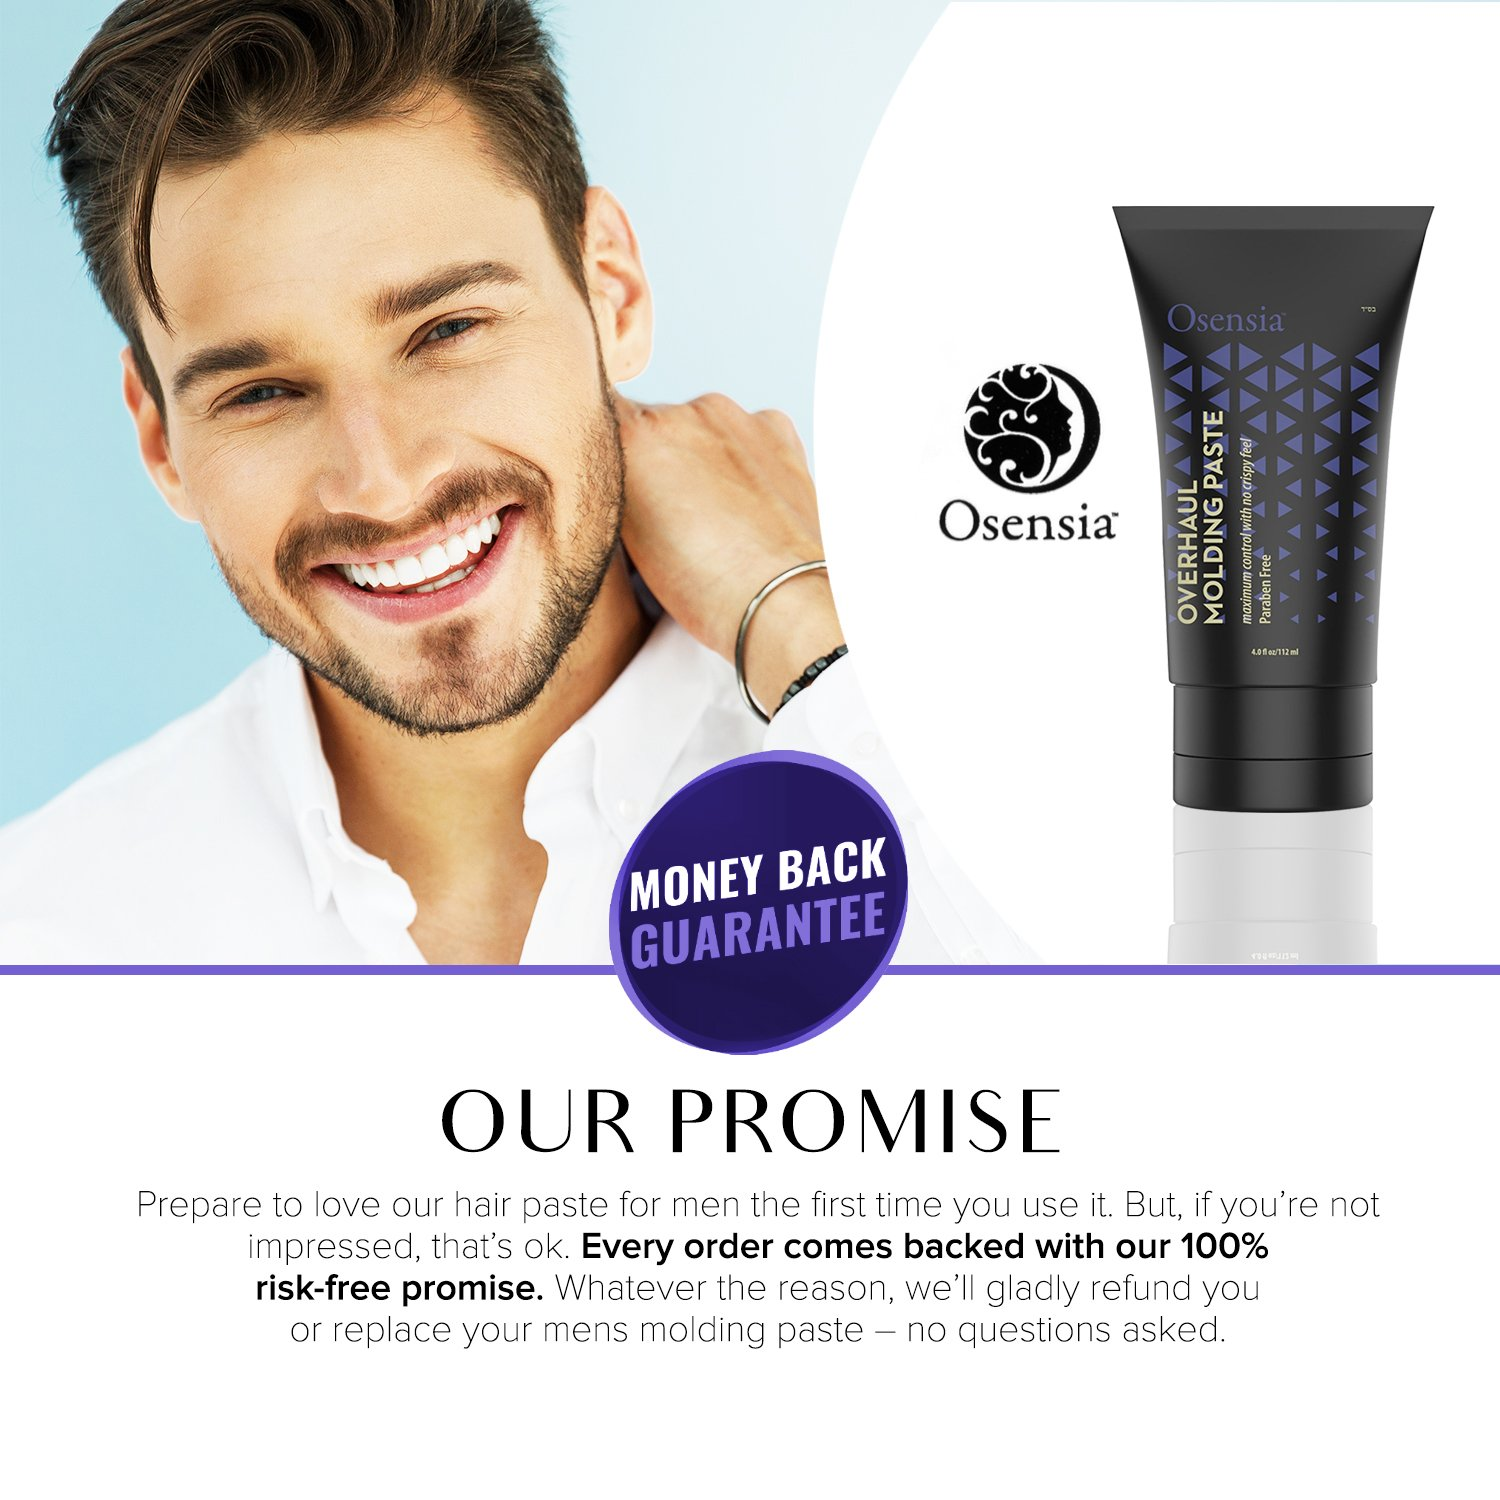 The Best Hair Styling S For Men Tried And Tested Part 2 James Welsh You